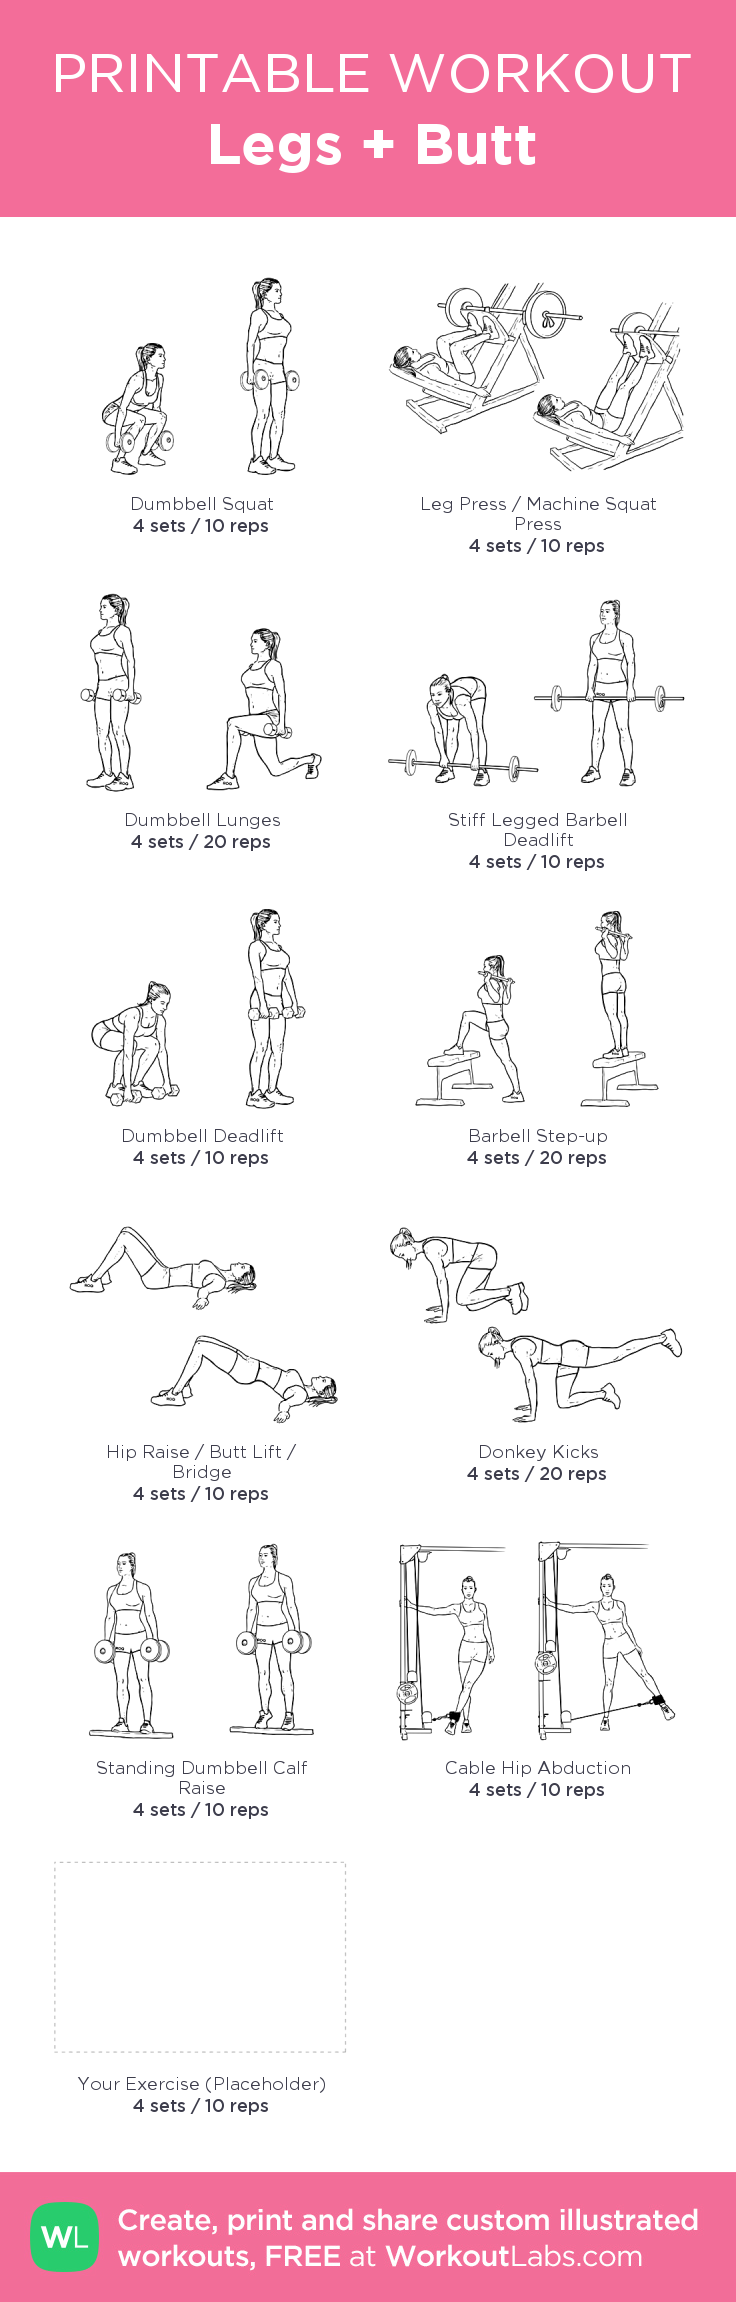 Legs + Butt:my visual workout created at WorkoutLabs.com • Click through to customize and download as a FREE PDF! #customworkout